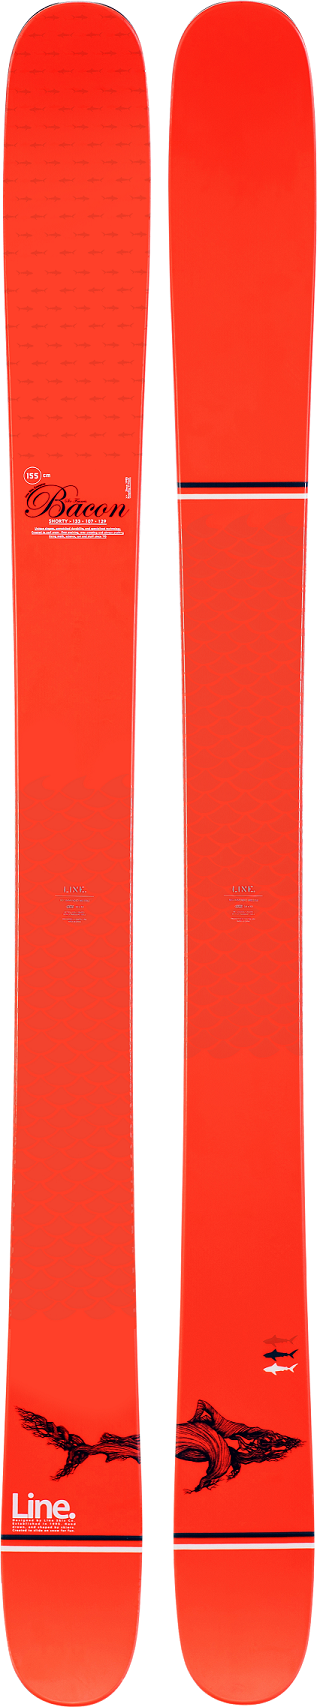 Image 0 of LINE - SIR FRANCIS BACON SHORTY JR SKIS - 2020